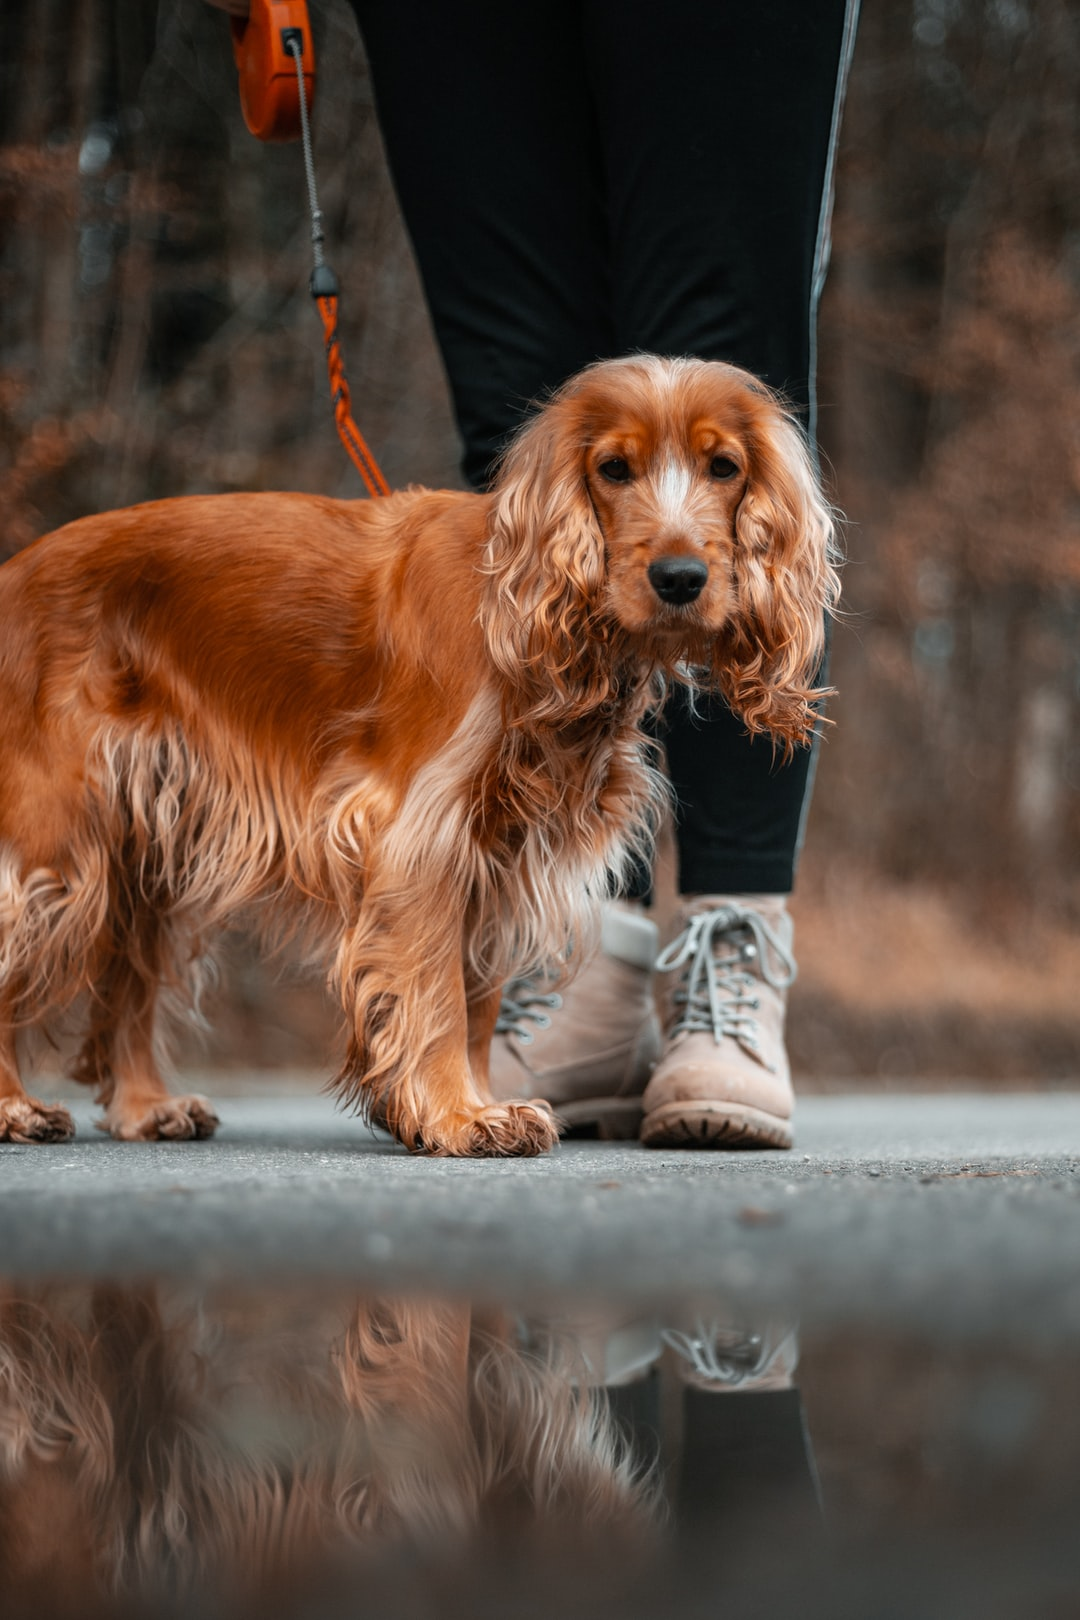 Dog Walking Problems & Solutions